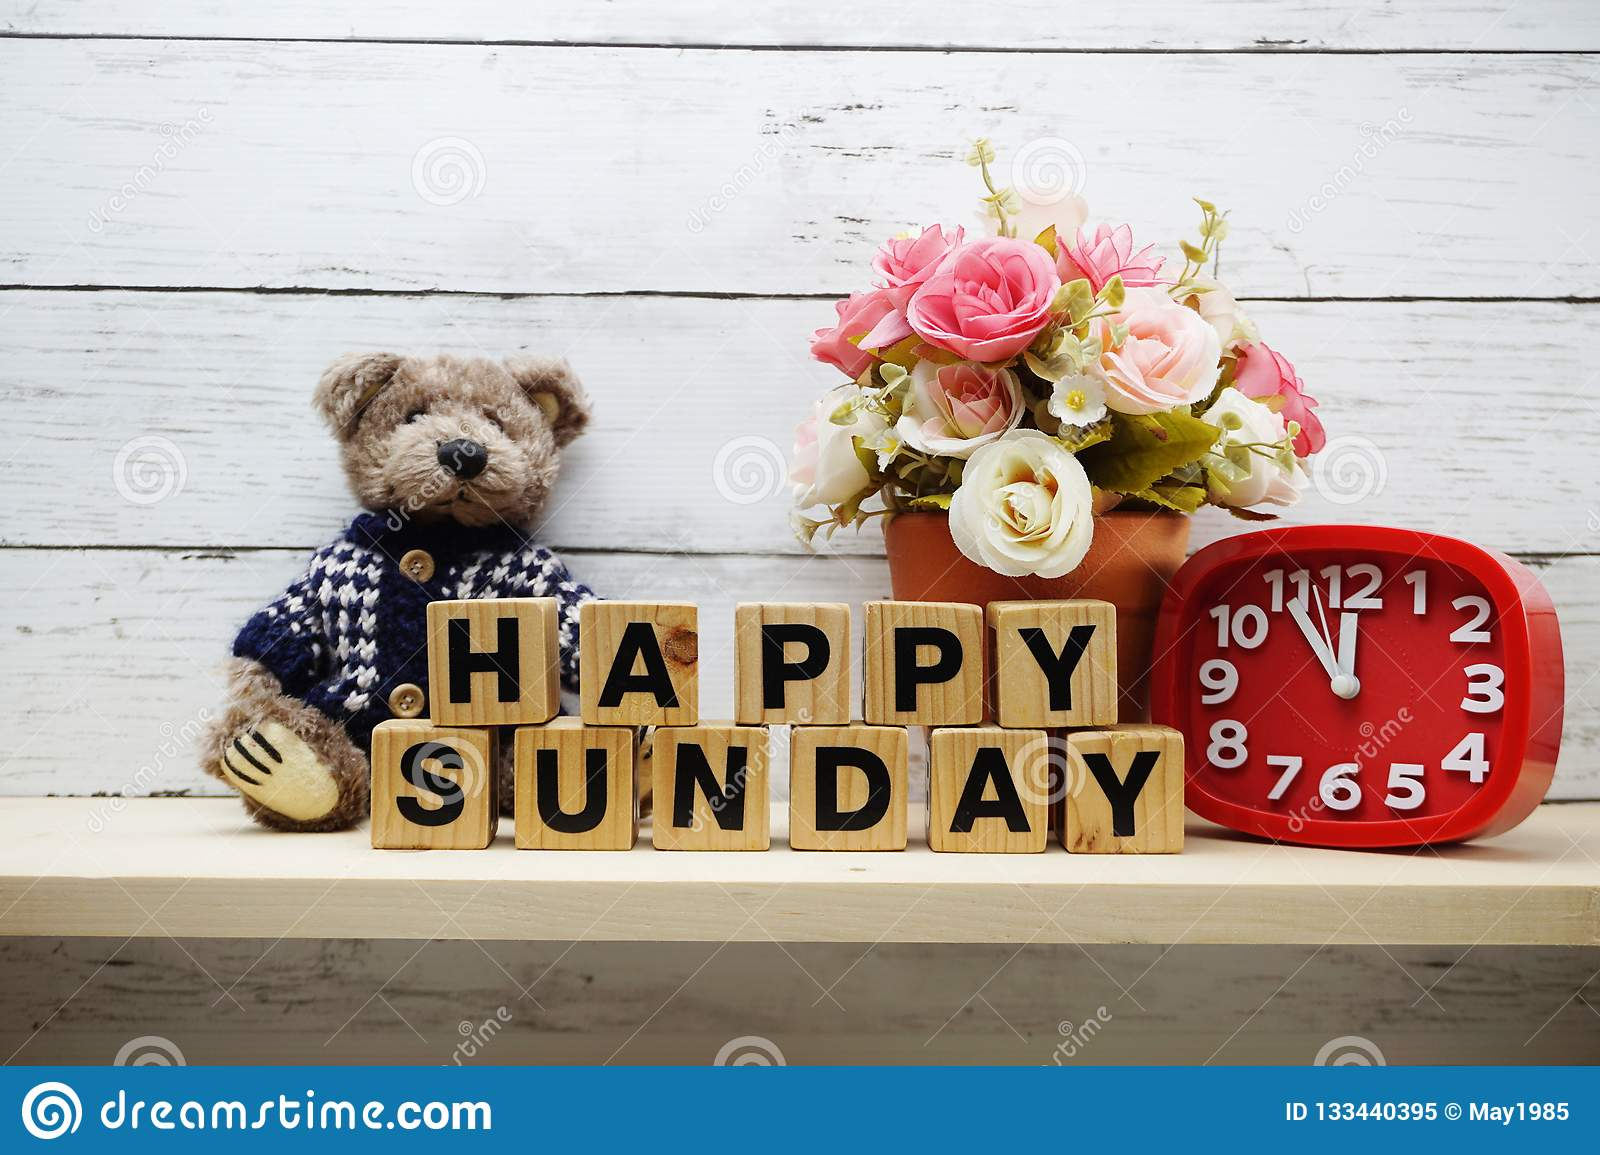 Happy Sunday Wooden Letter Alphabet With Decorate Item On Wooden